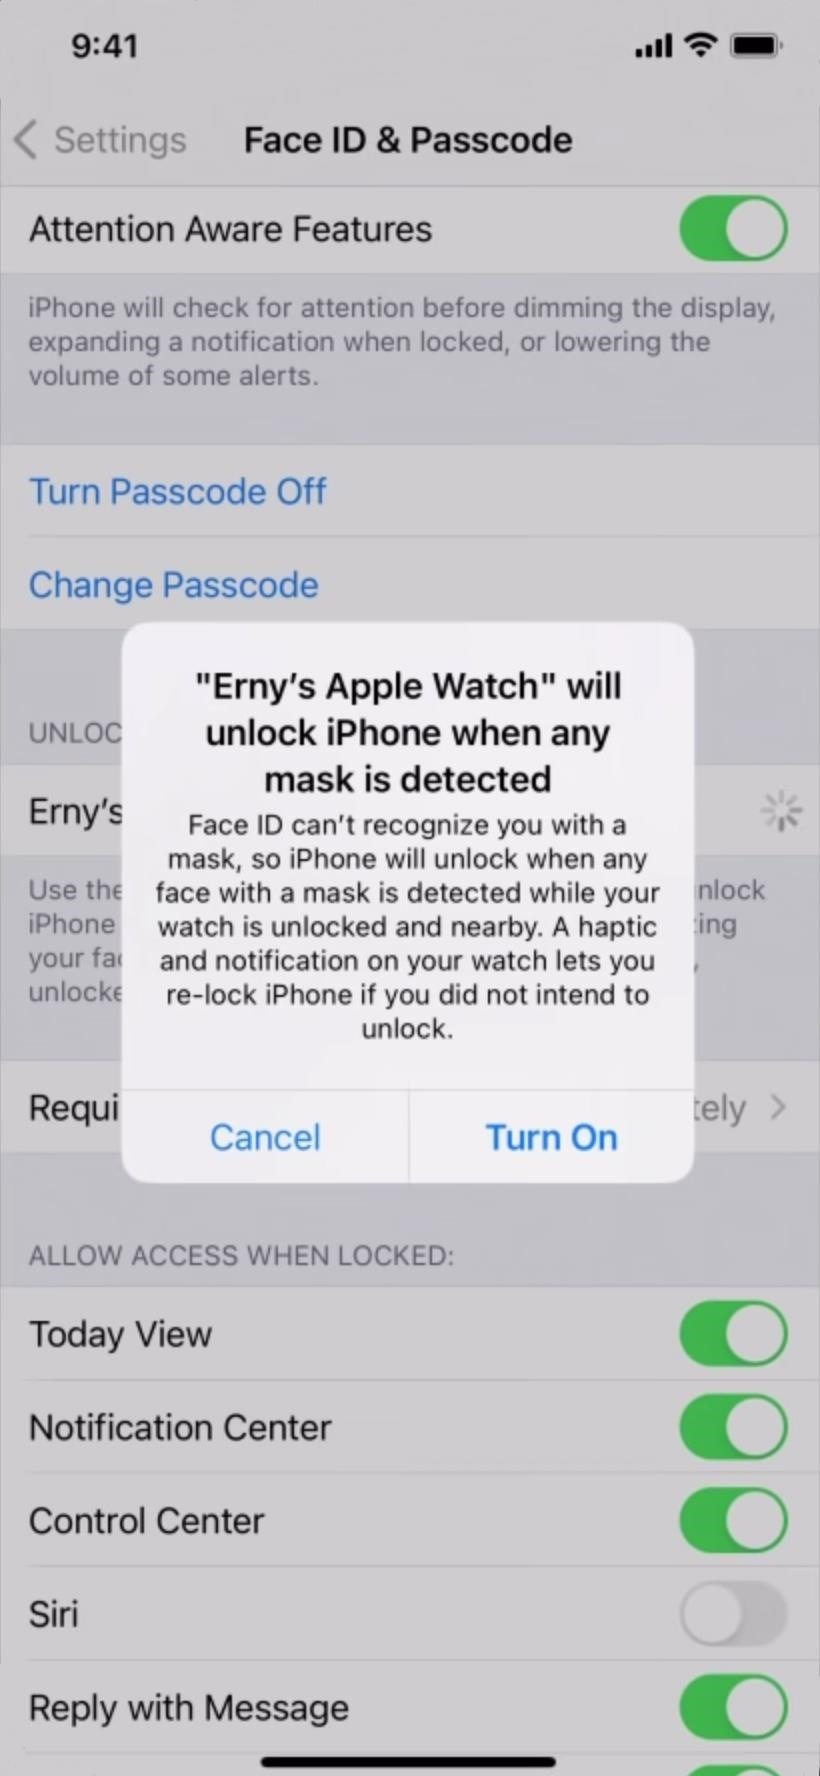 Unlocking Your iPhone While Wearing a Mask Just Got Way Easier